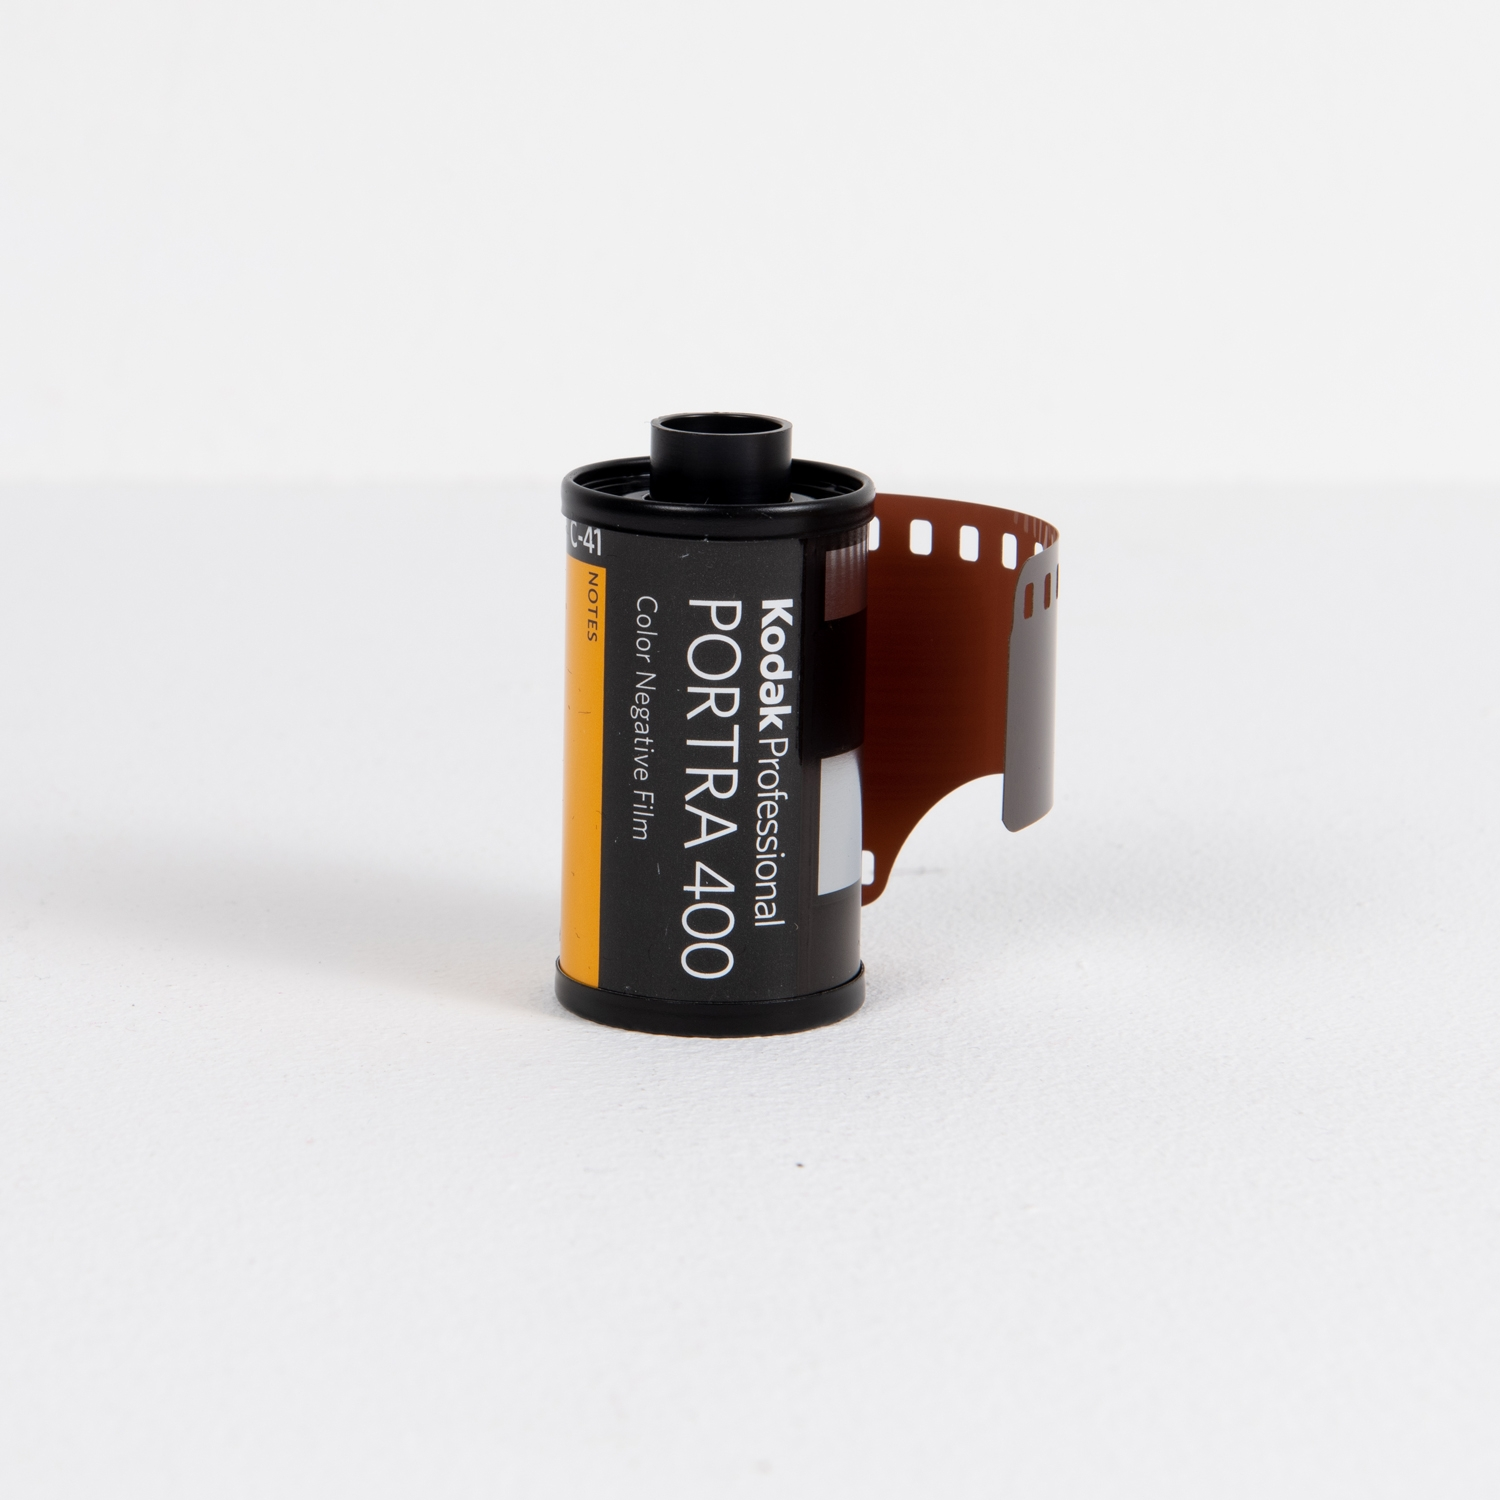 Kodak Portra, ISO 400 Color Negative Film (35mm - Single Film)